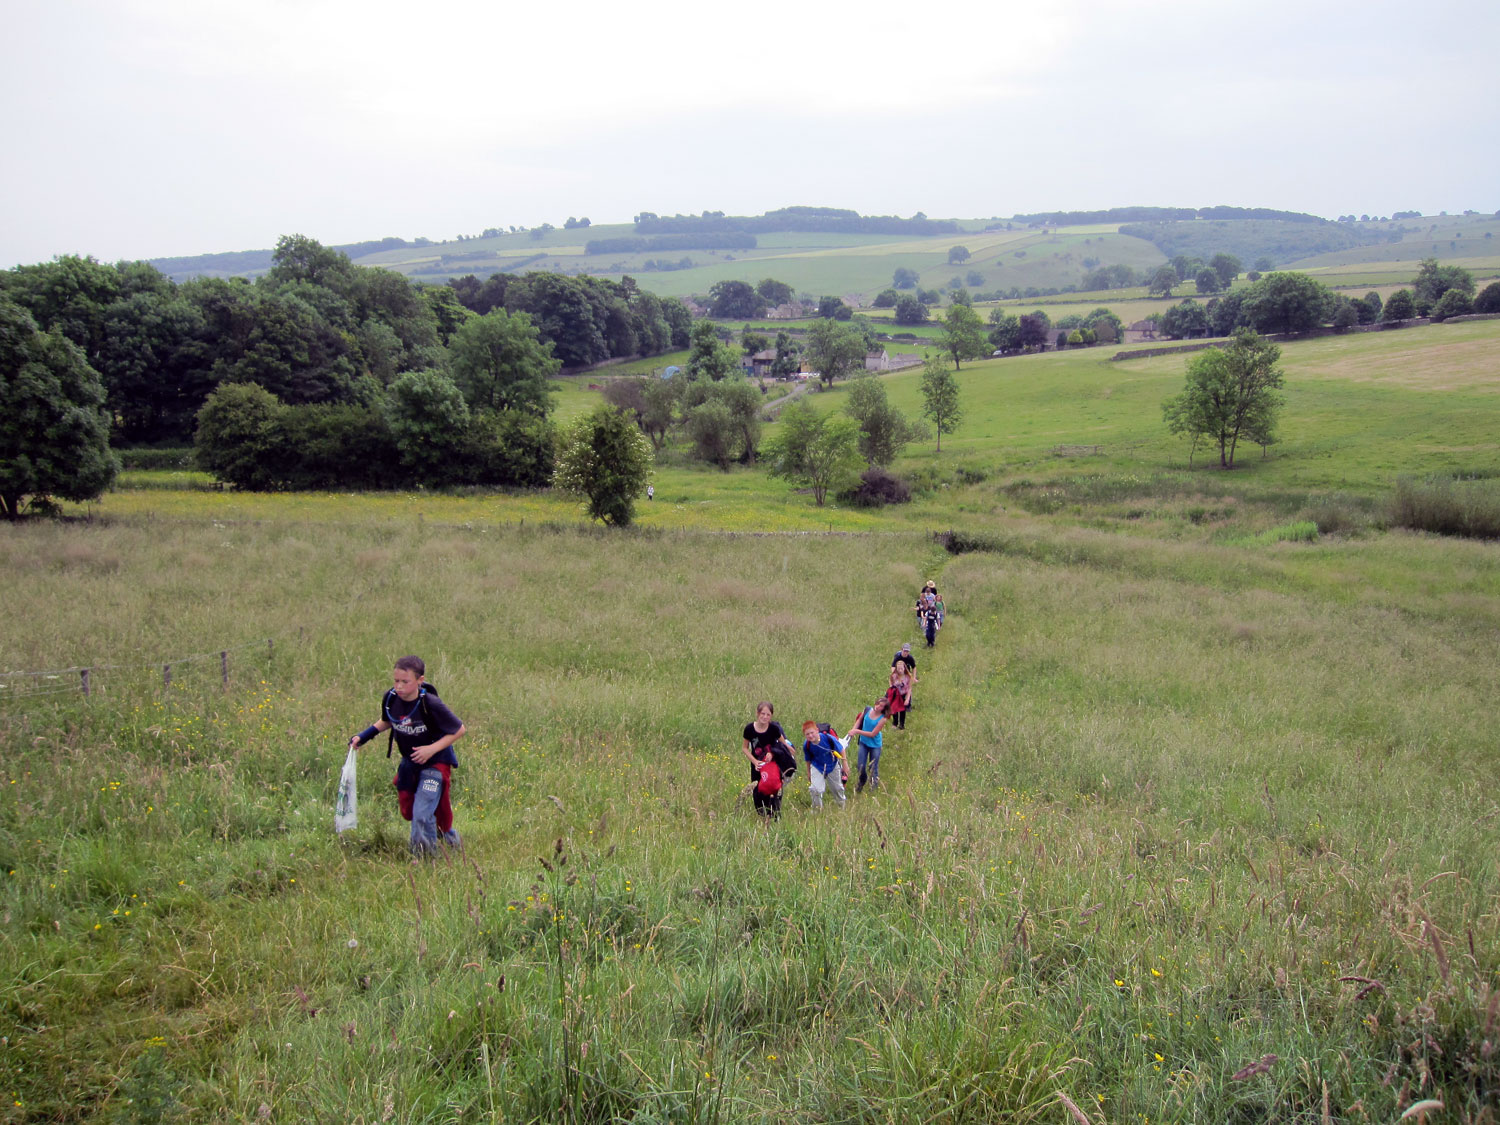 7 children walking across a field